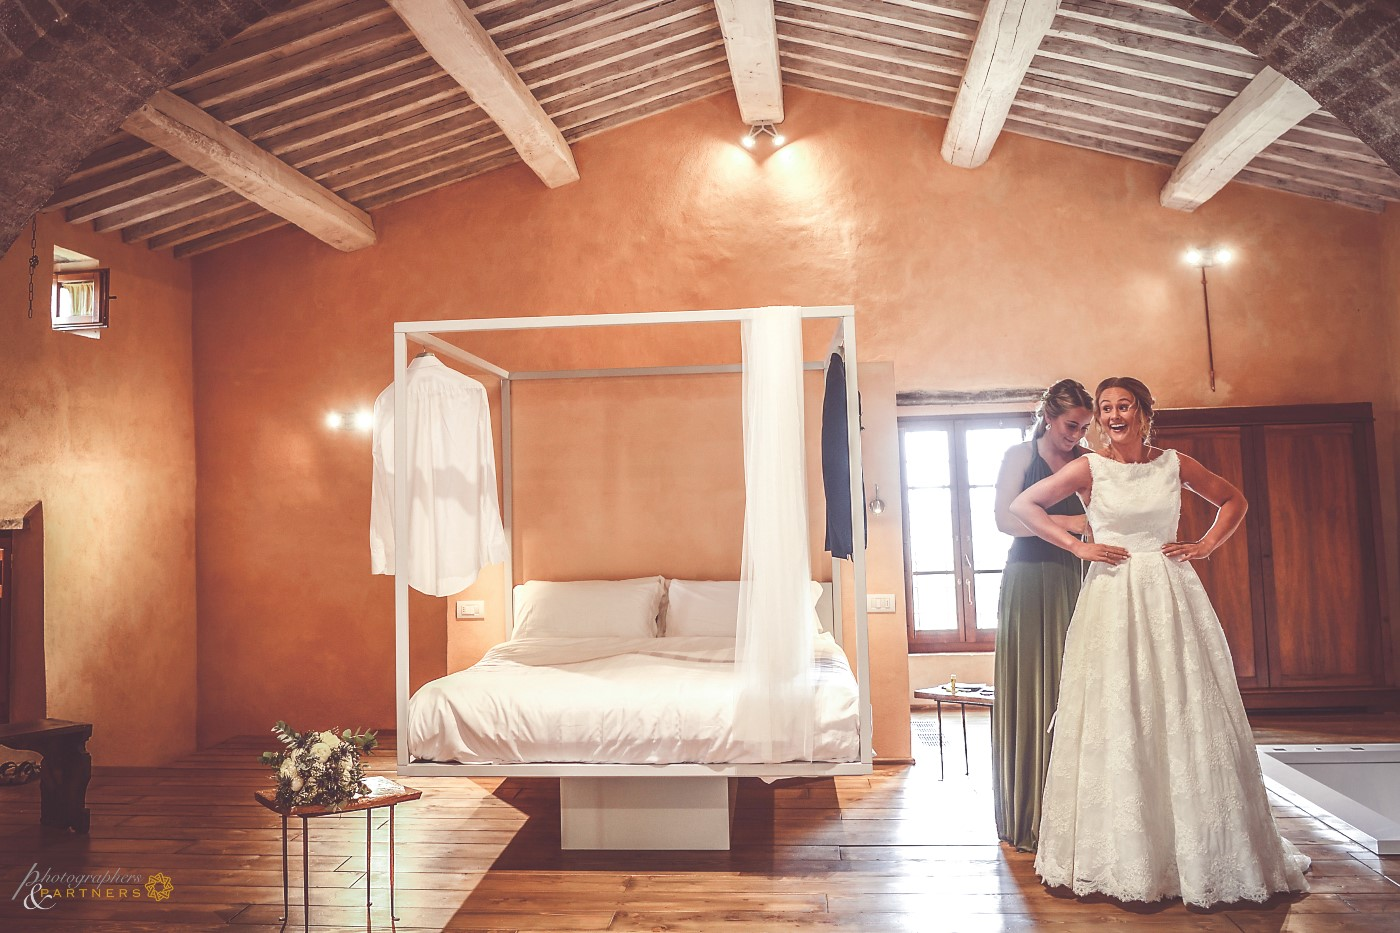 photographer_weddings_pienza_02.jpg